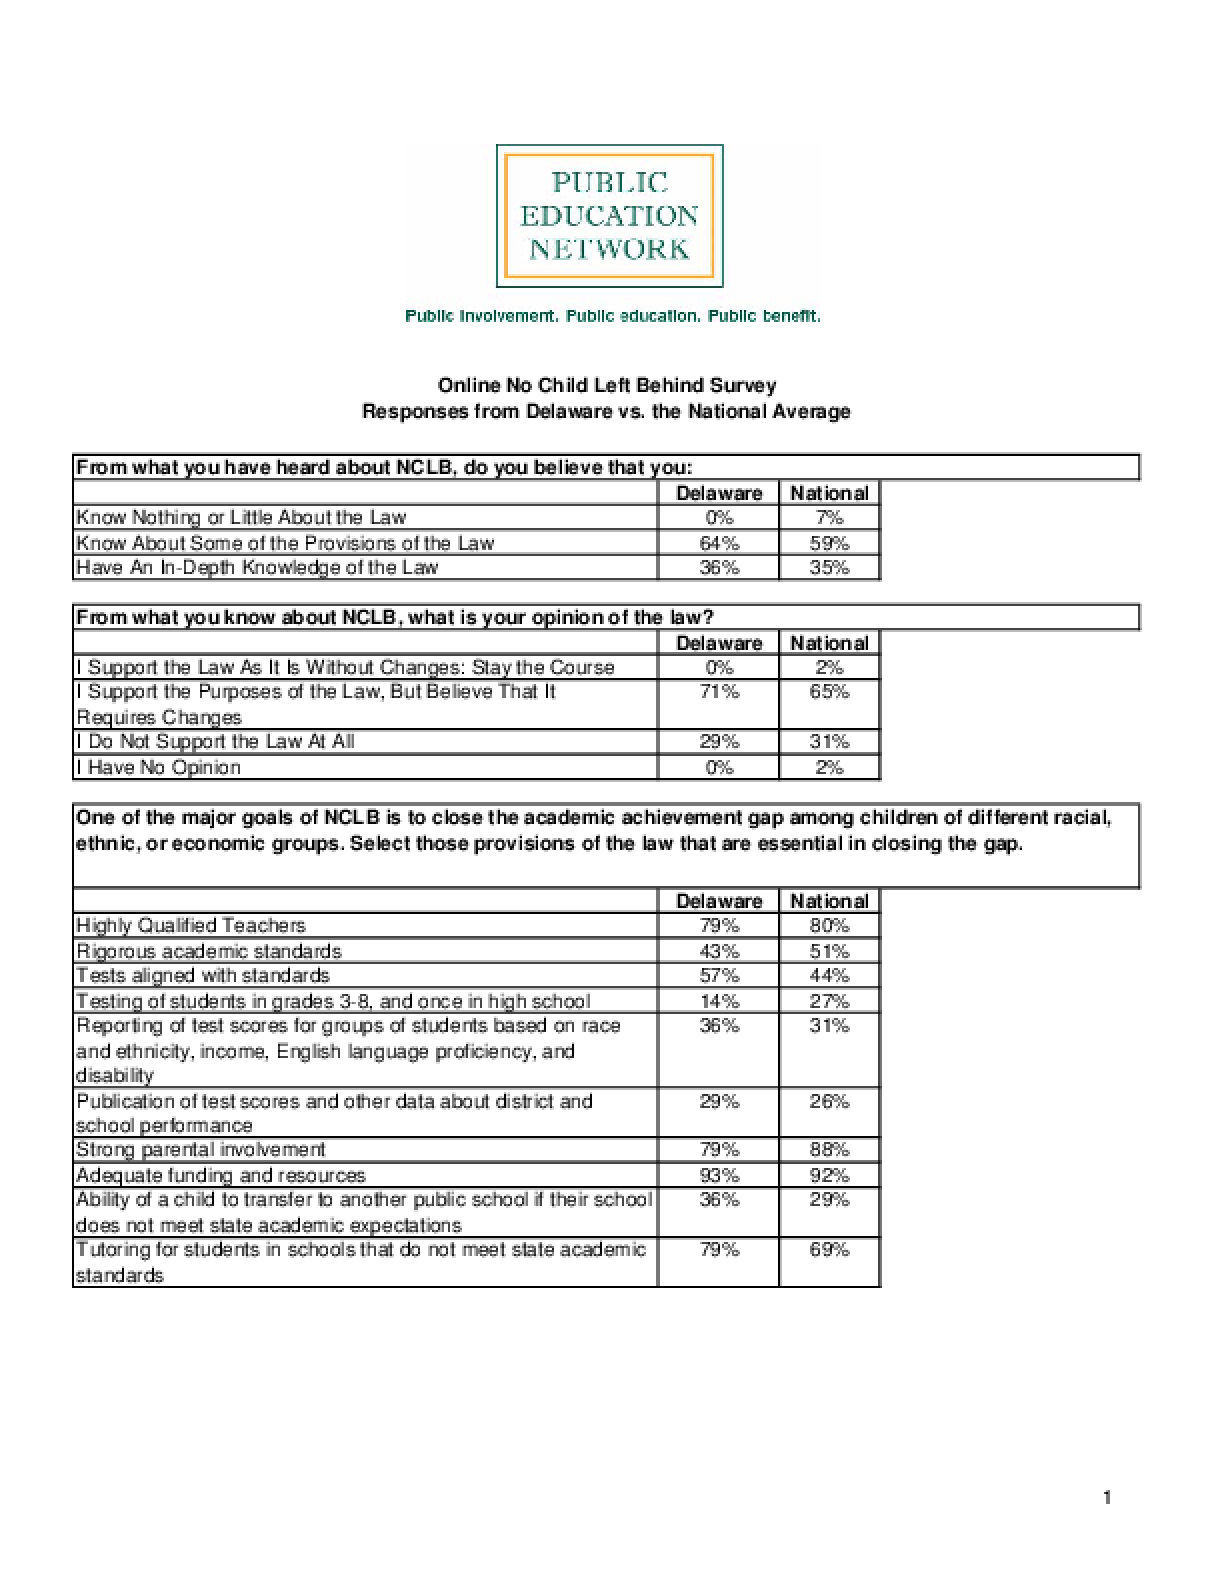 Online No Child Left Behind Survey Responses from Delaware vs. the National Average